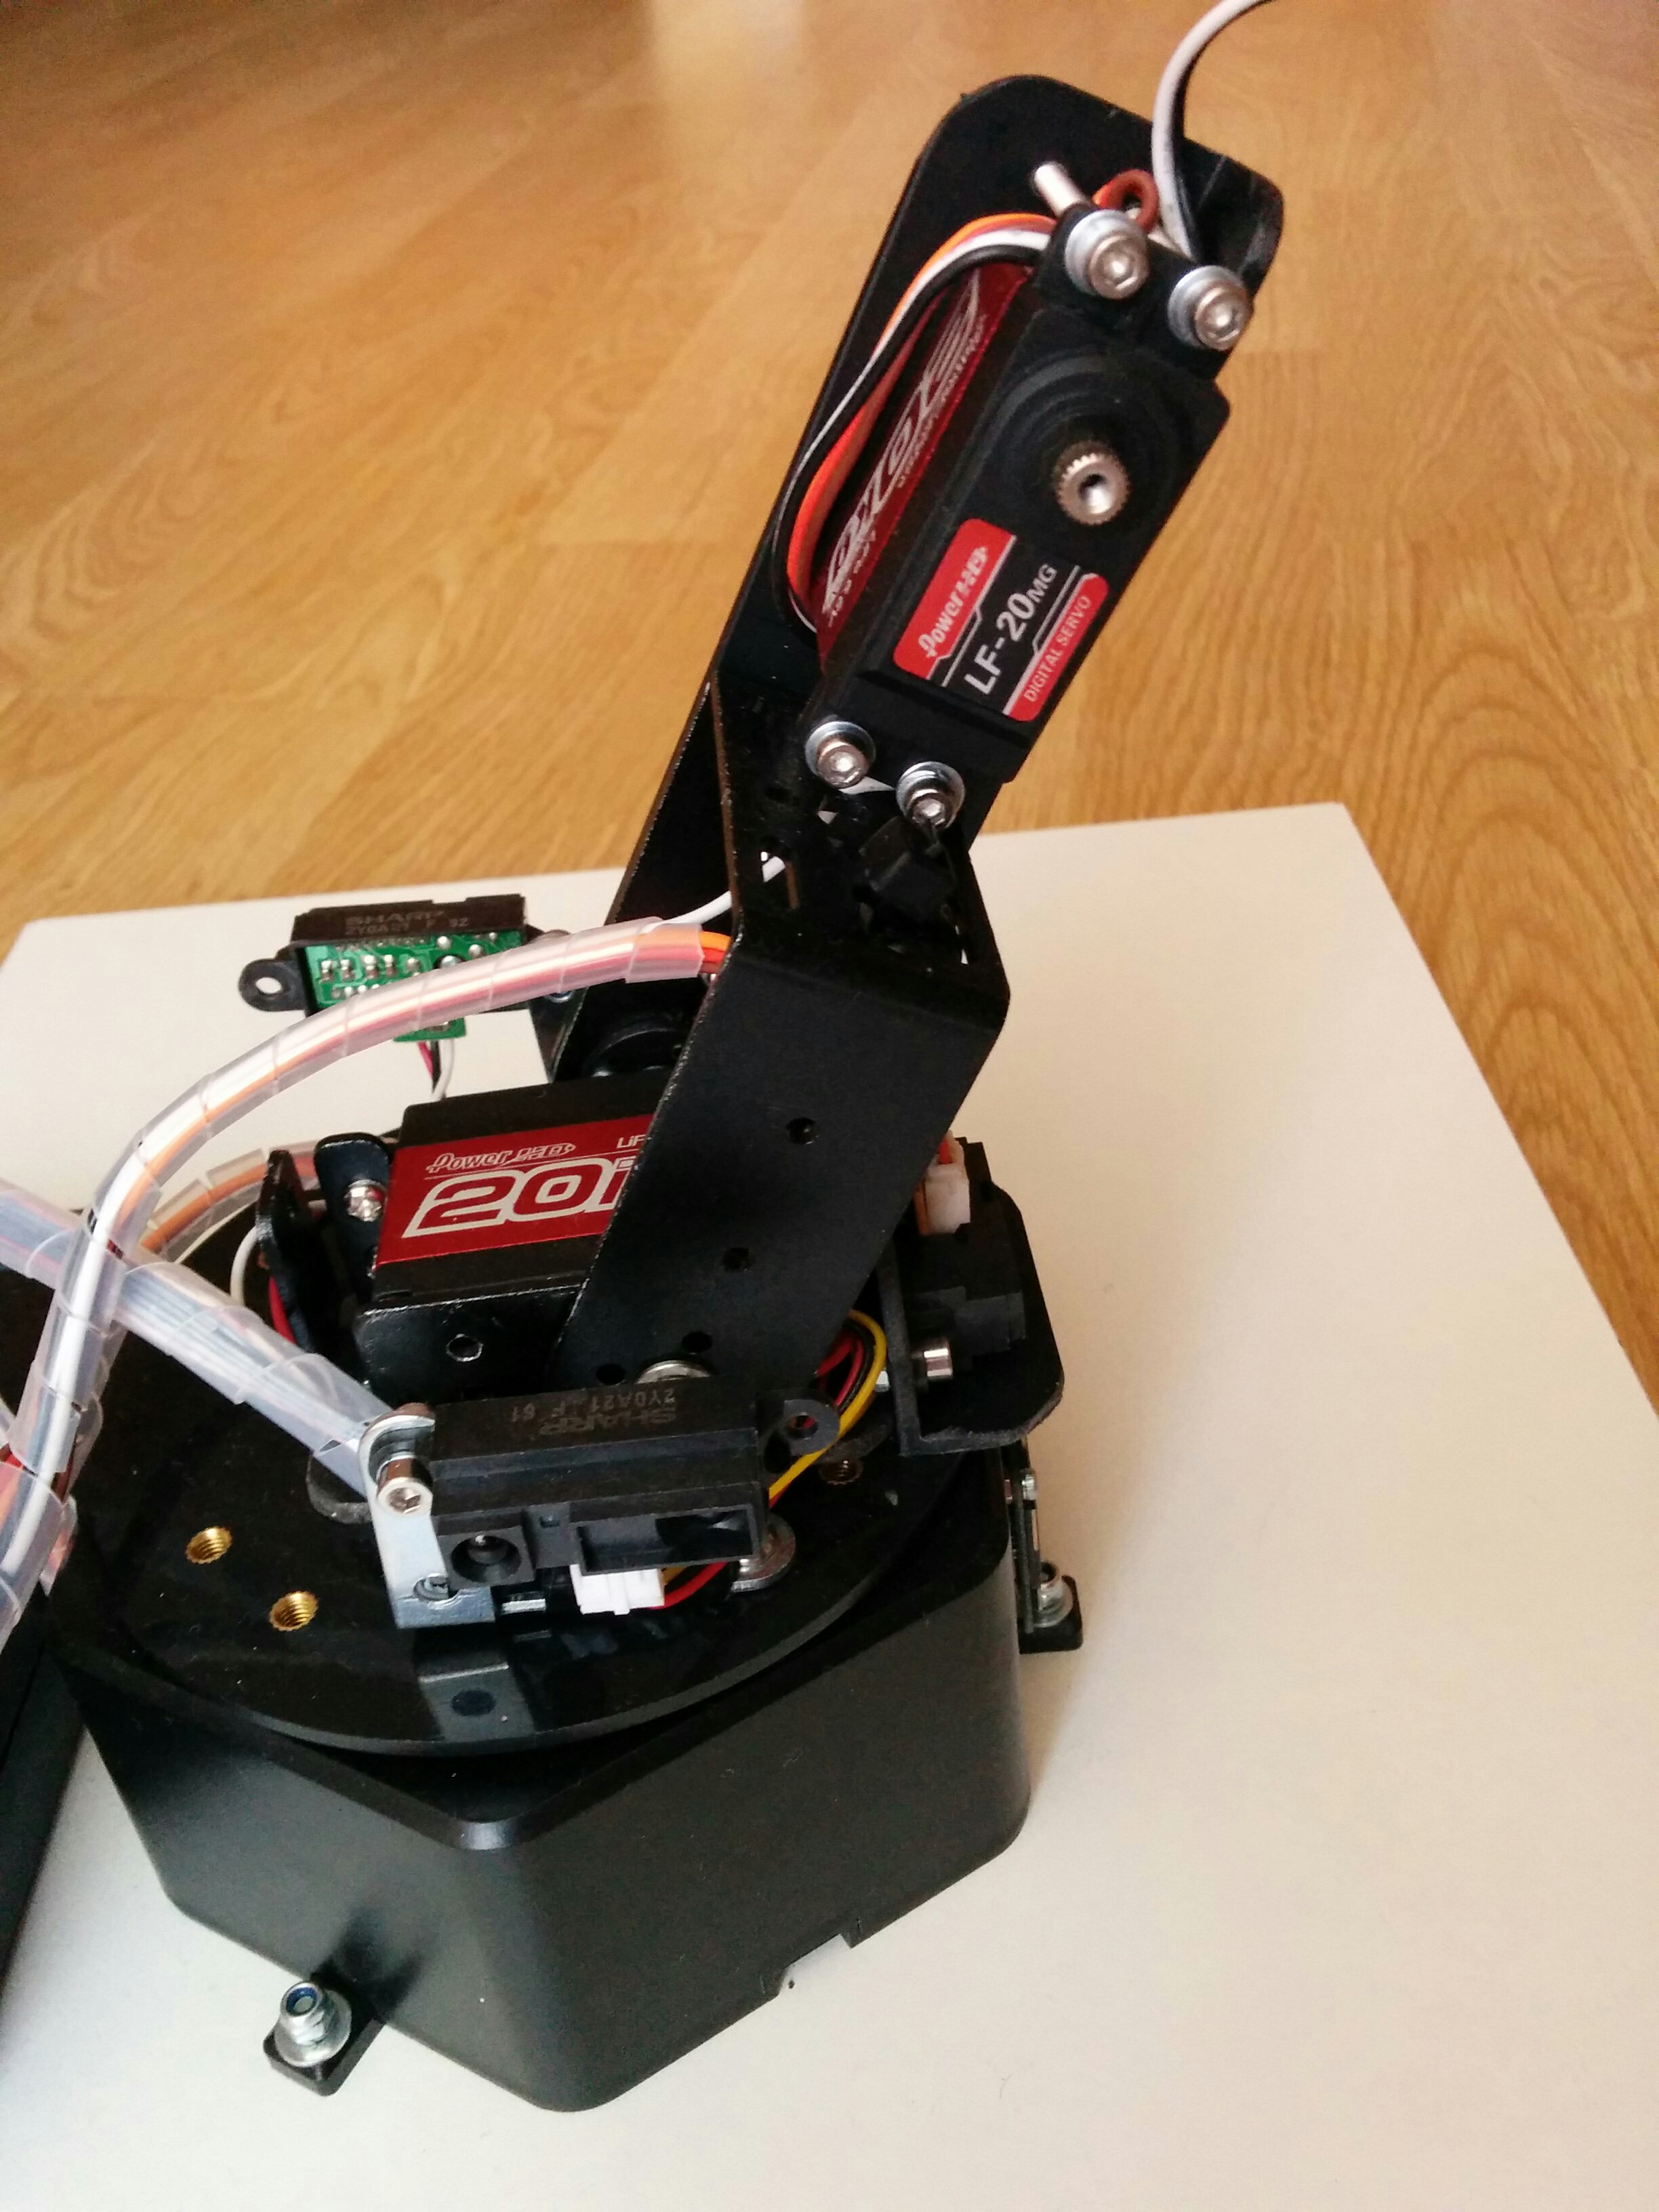 Picture of Assembling the Robotic Arm